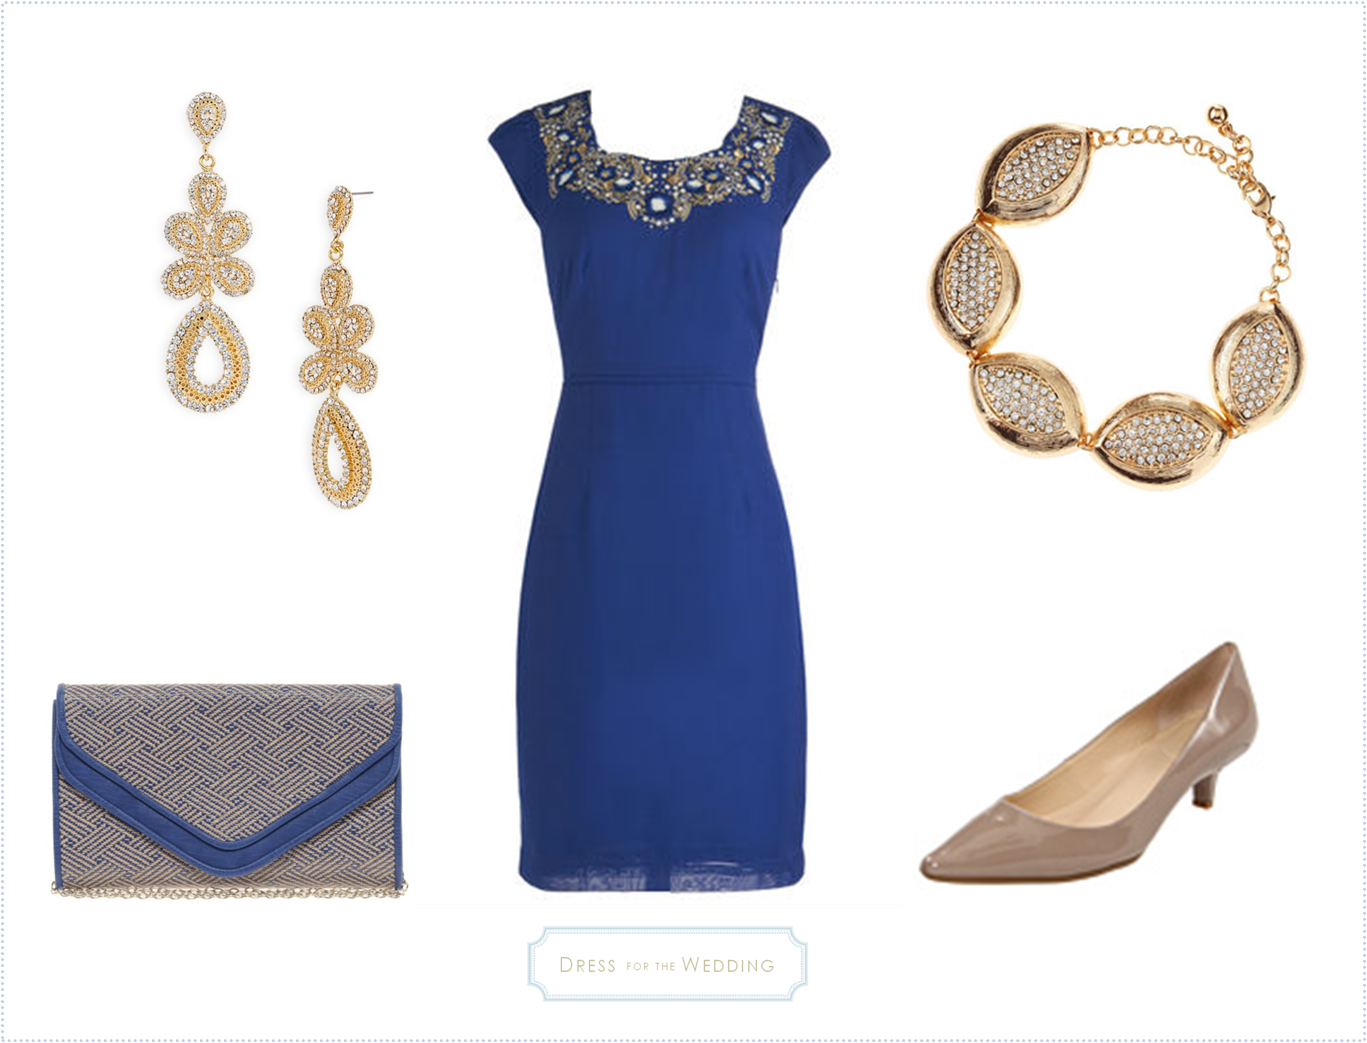 Royal Blue Dress For a Wedding Guest